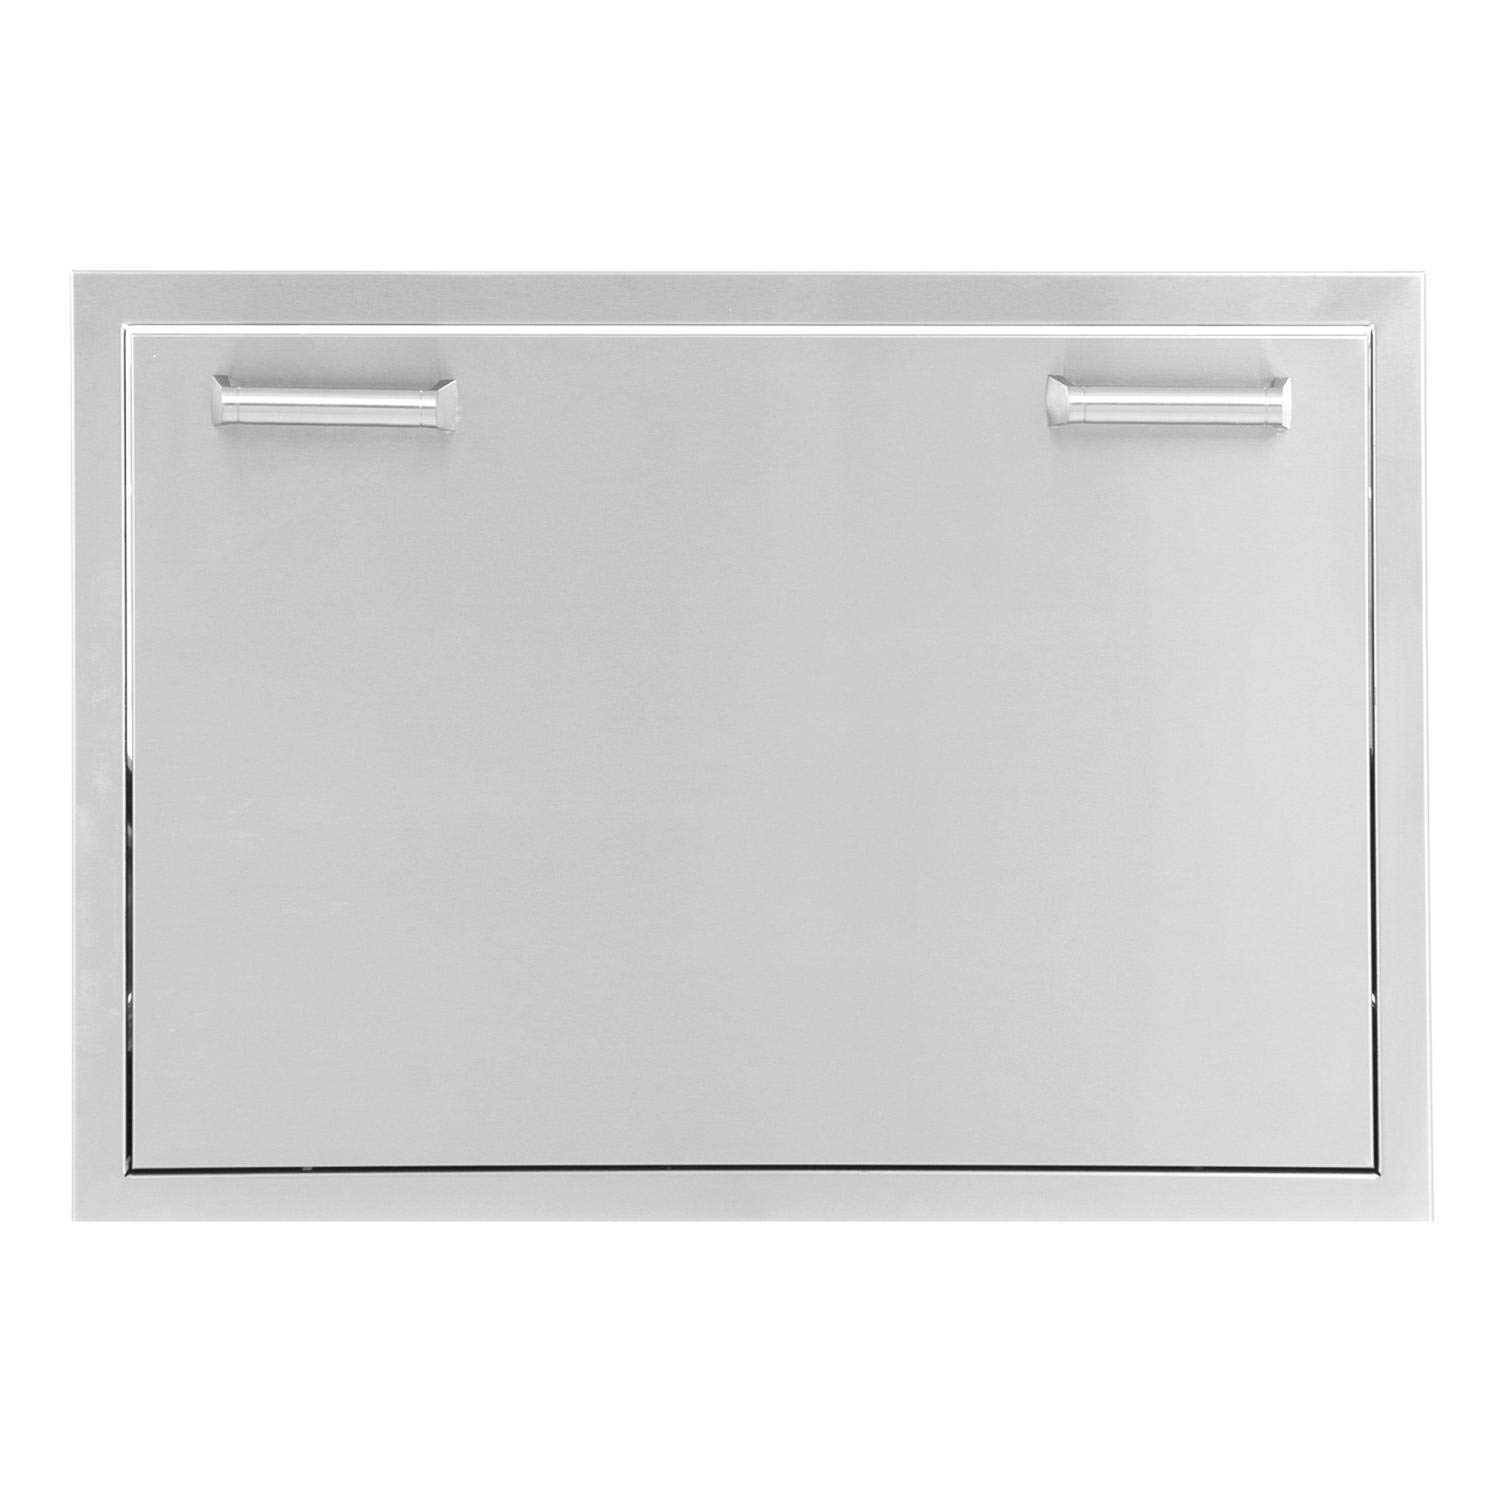 BBQGuys Sonoma Series 30-Inch Stainless Steel Roll-Out Ice Chest Storage Drawer